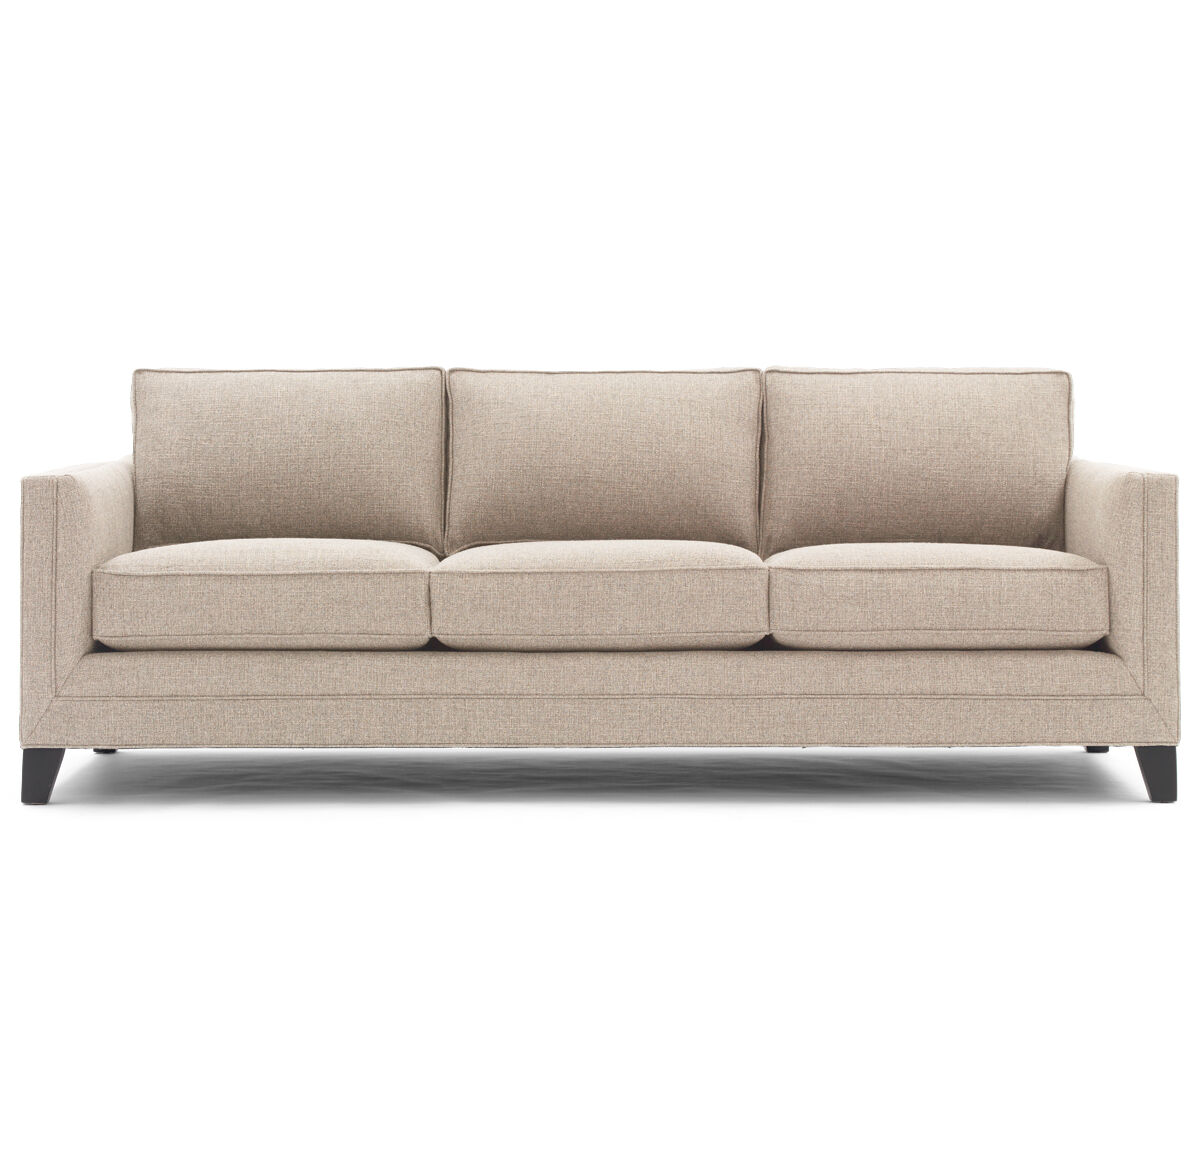 best price on sofas sofa tables pottery barn reese velvet grey online at sod